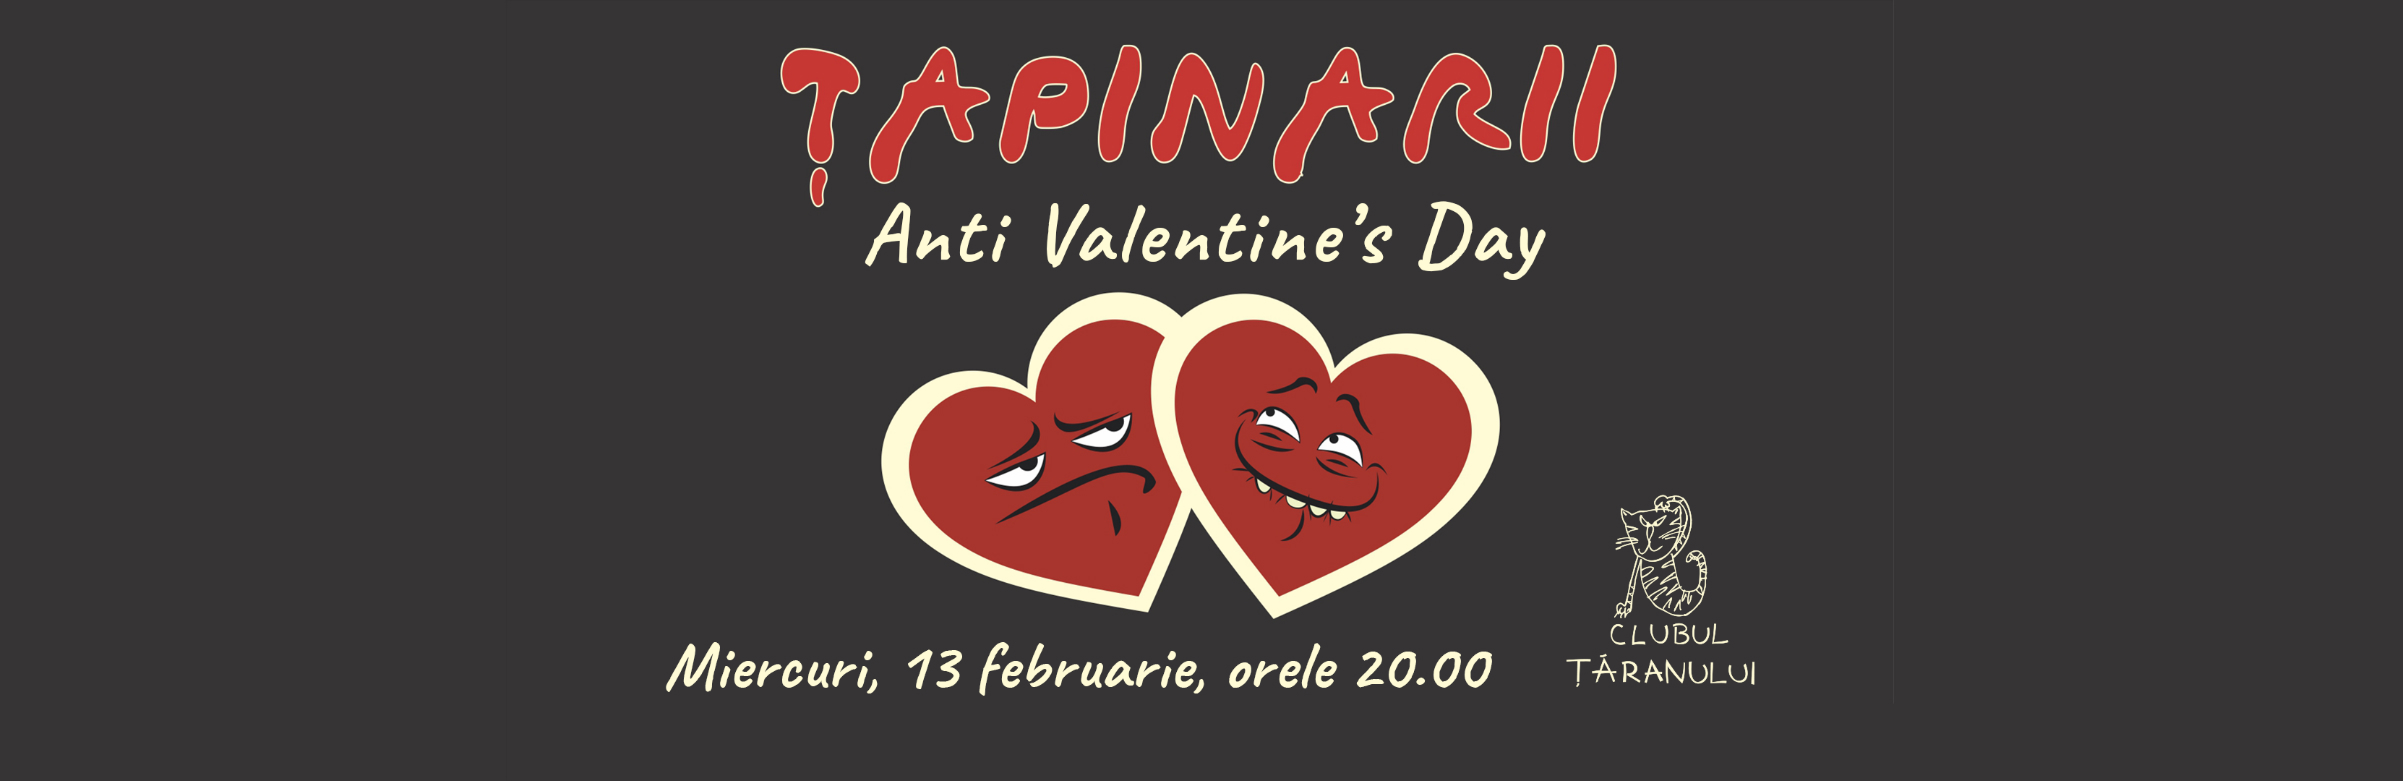 Tapinarii - Anti Valentine's Day